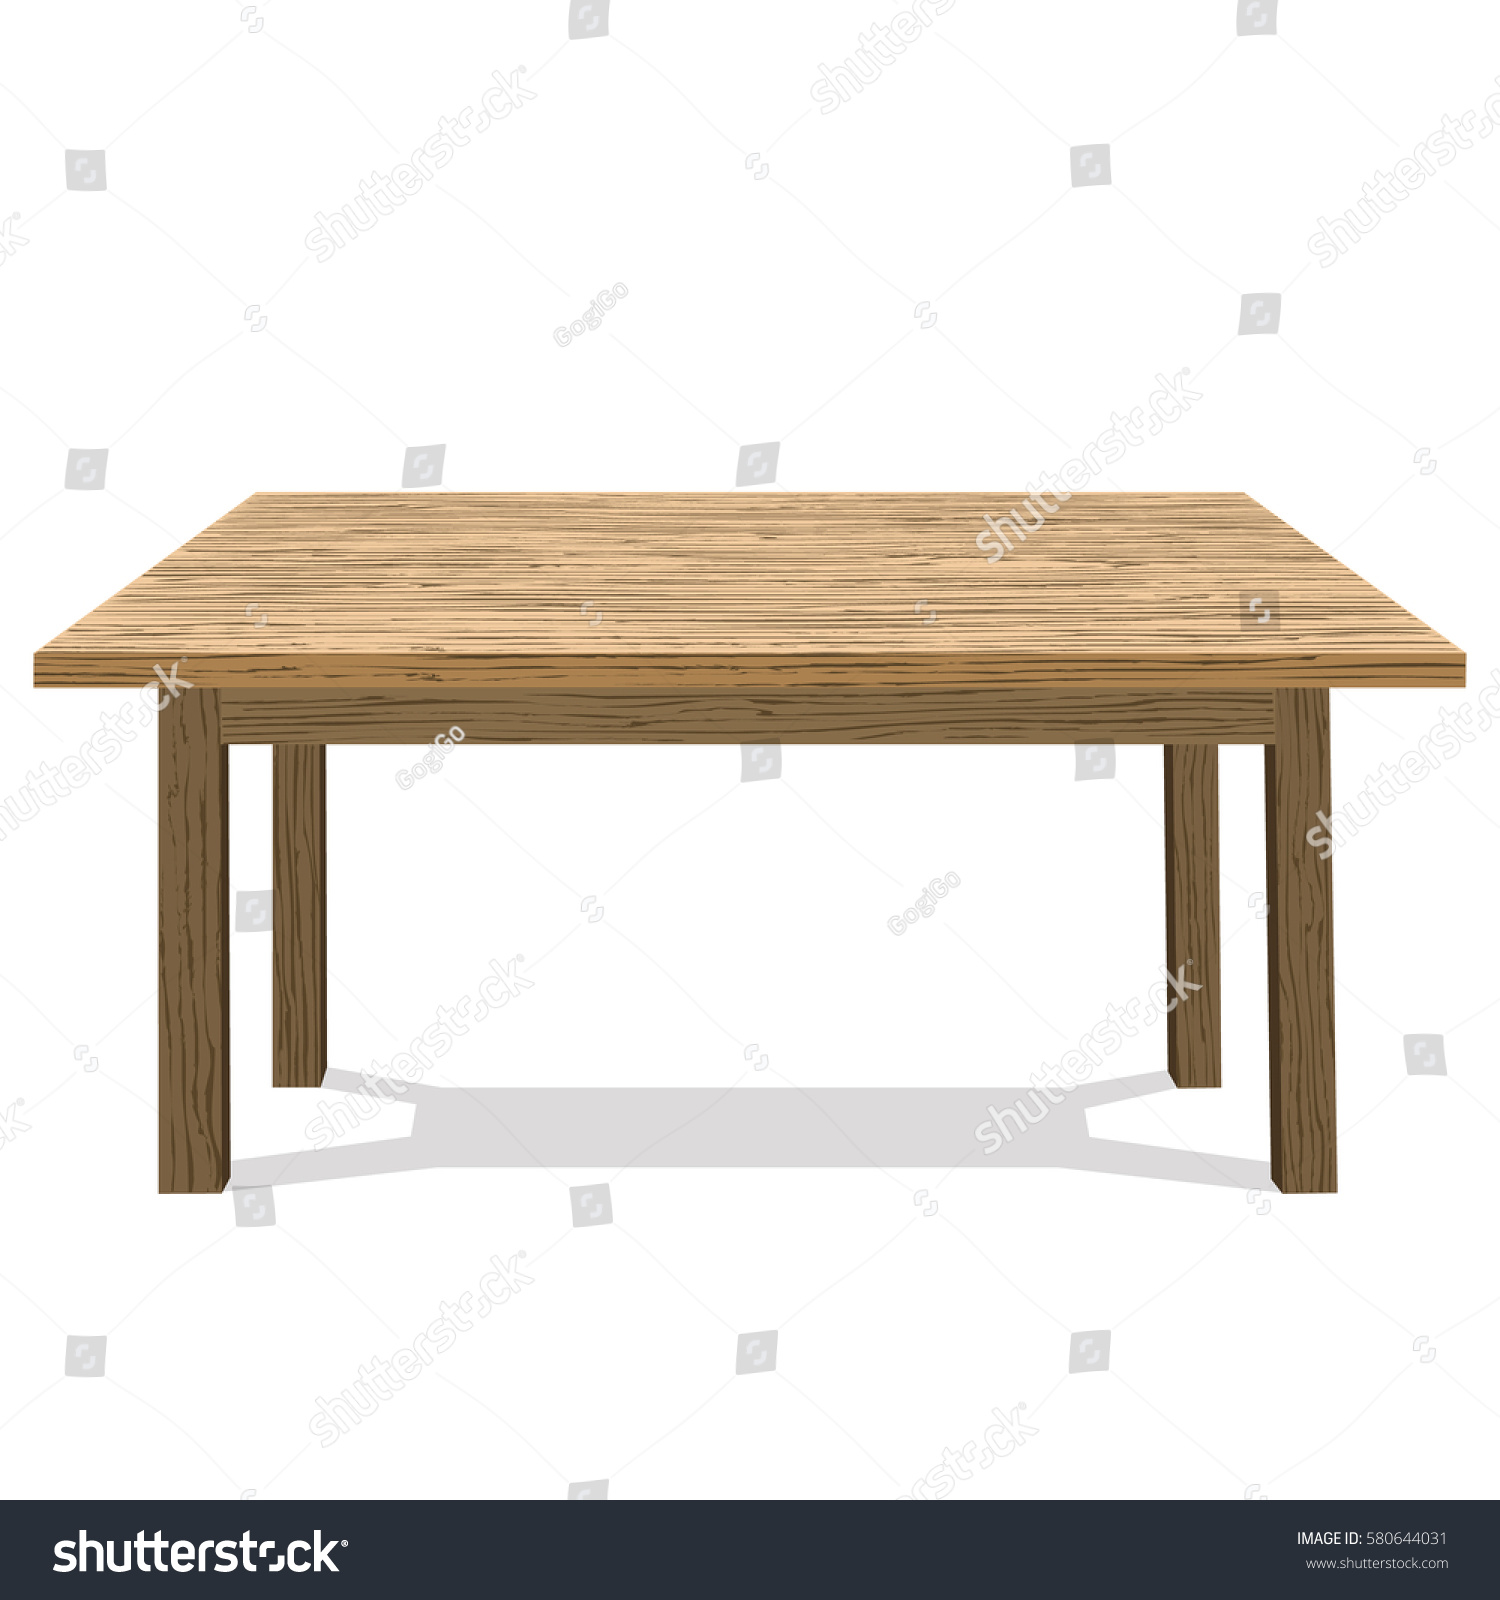 Wooden Table Platform Stand Template Object Stock Vector